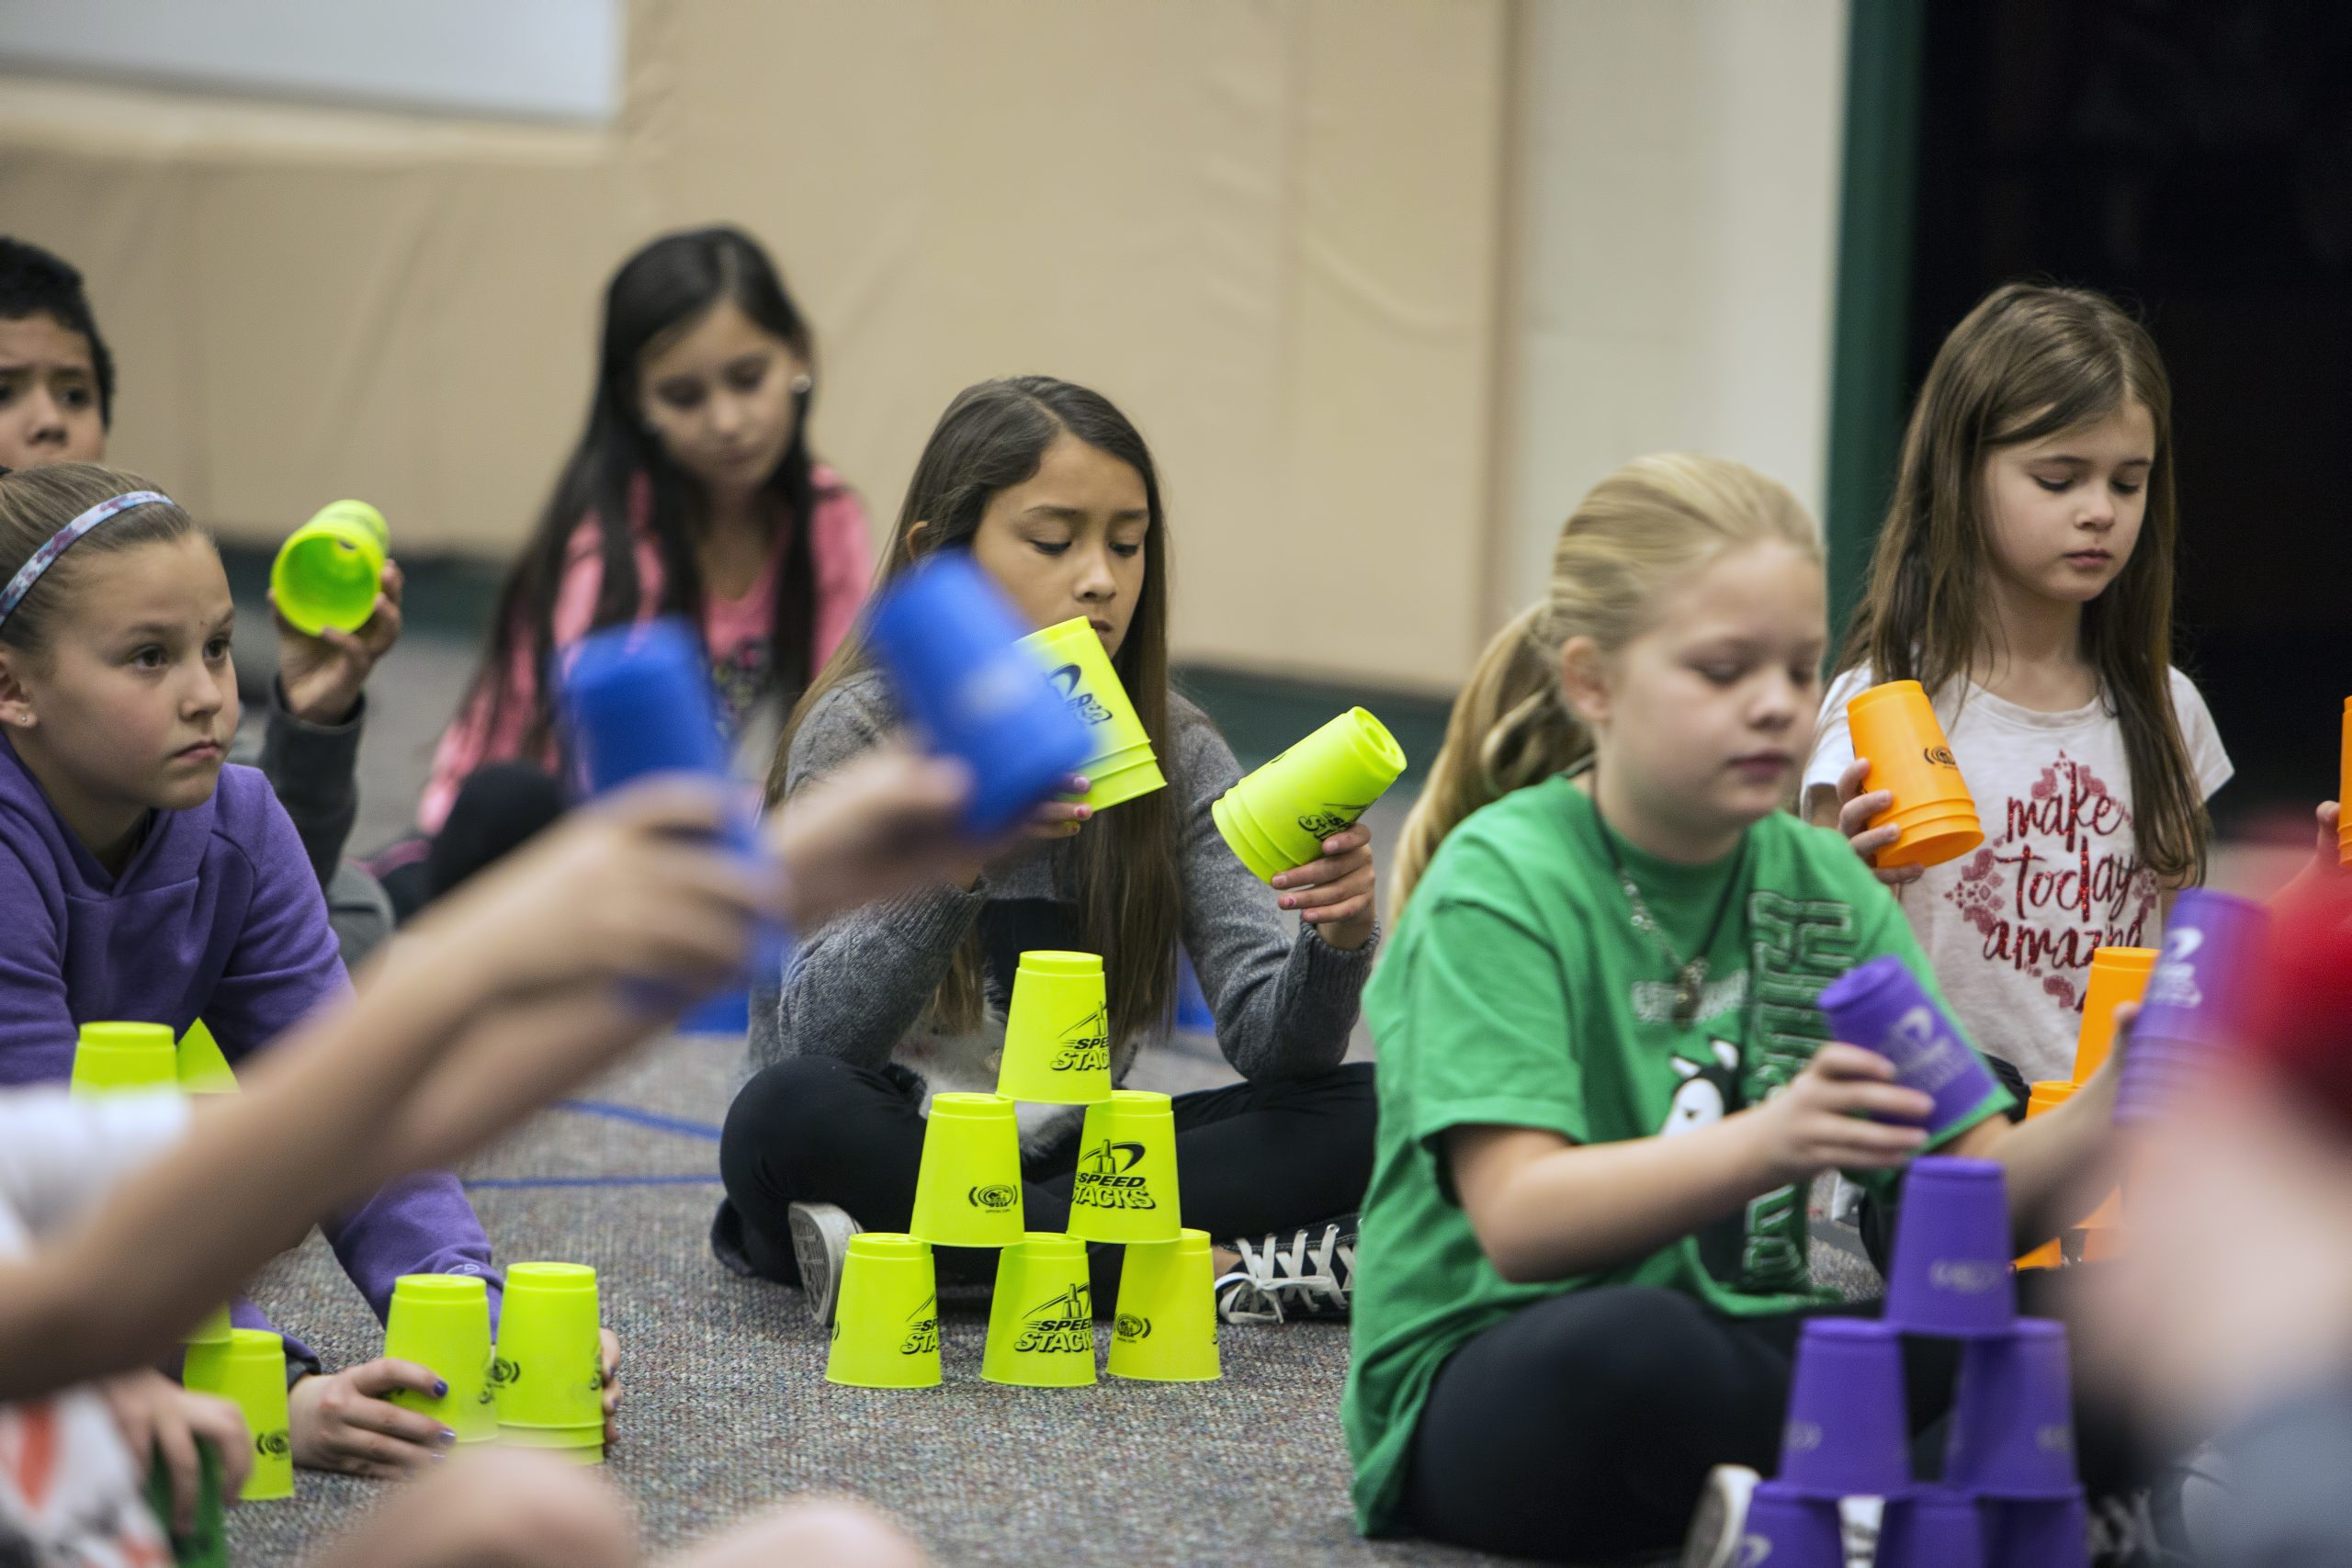 Students participating in the cup stacking challenge